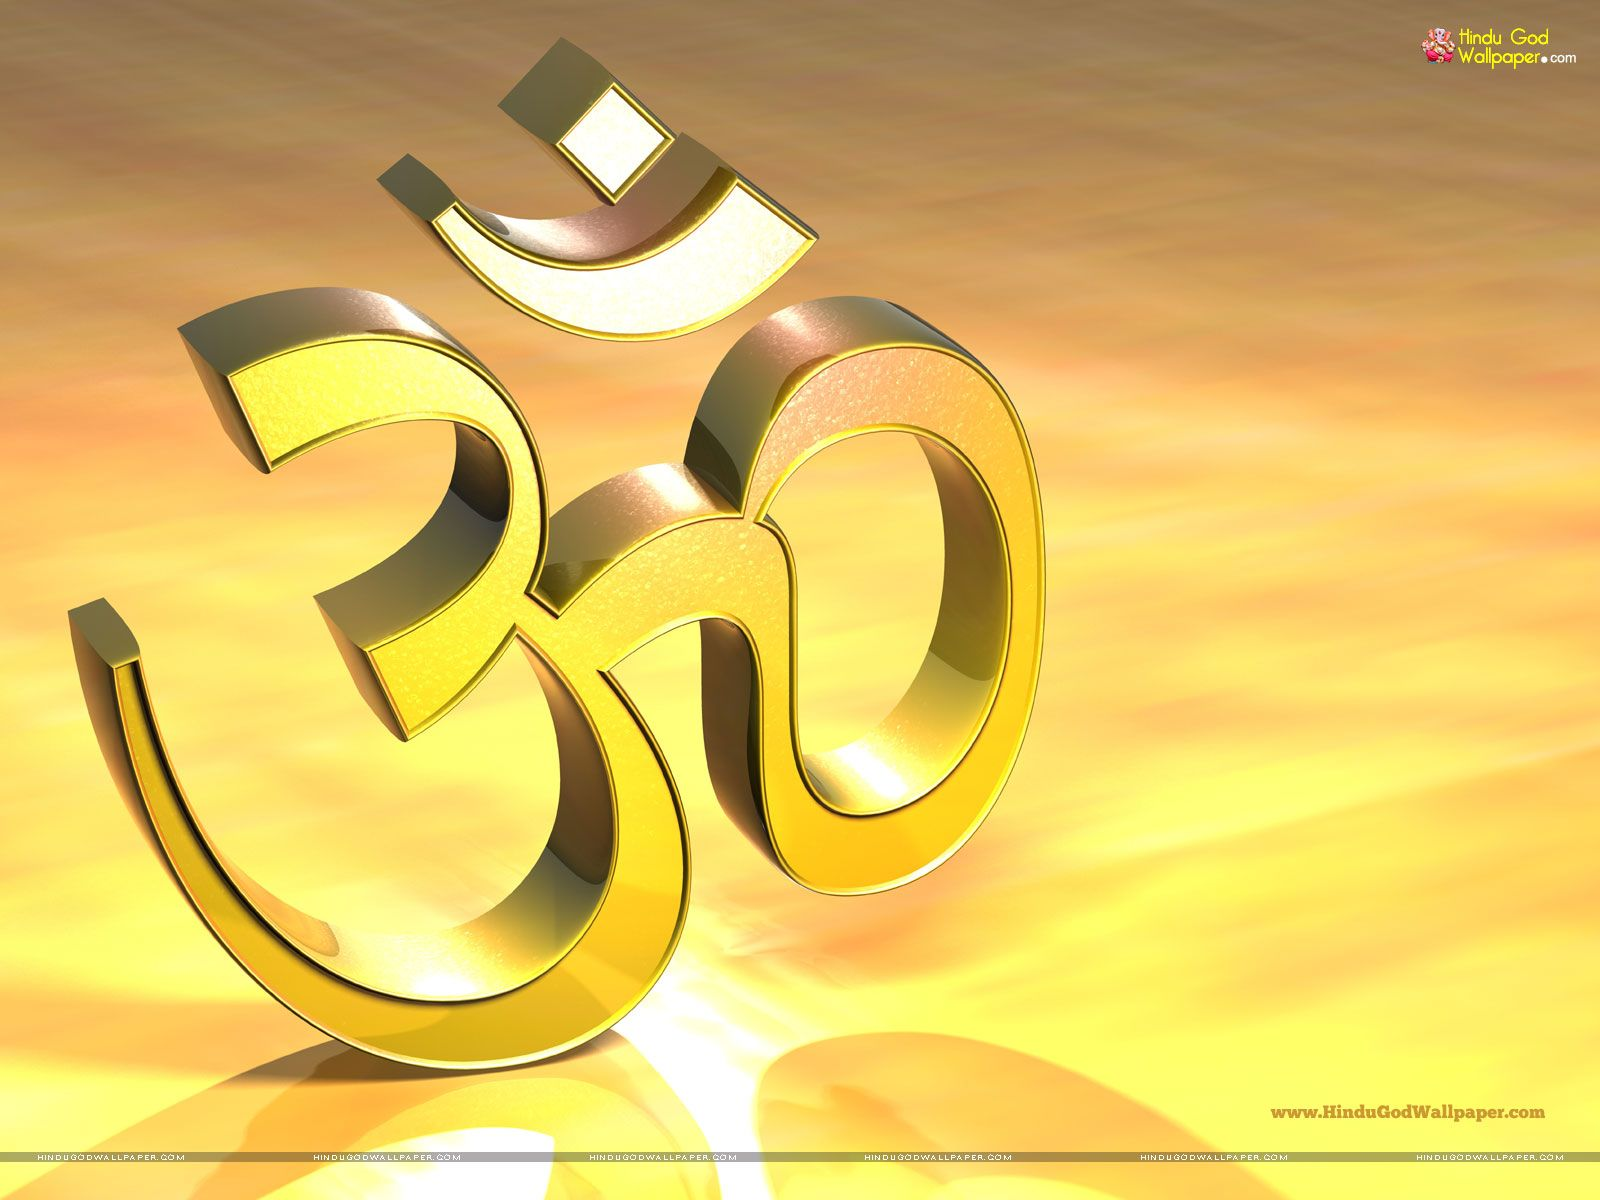 3d om wallpaper free download om wallpapers pinterest free 3d om wallpaper free download om wallpapers pinterest biocorpaavc Choice Image